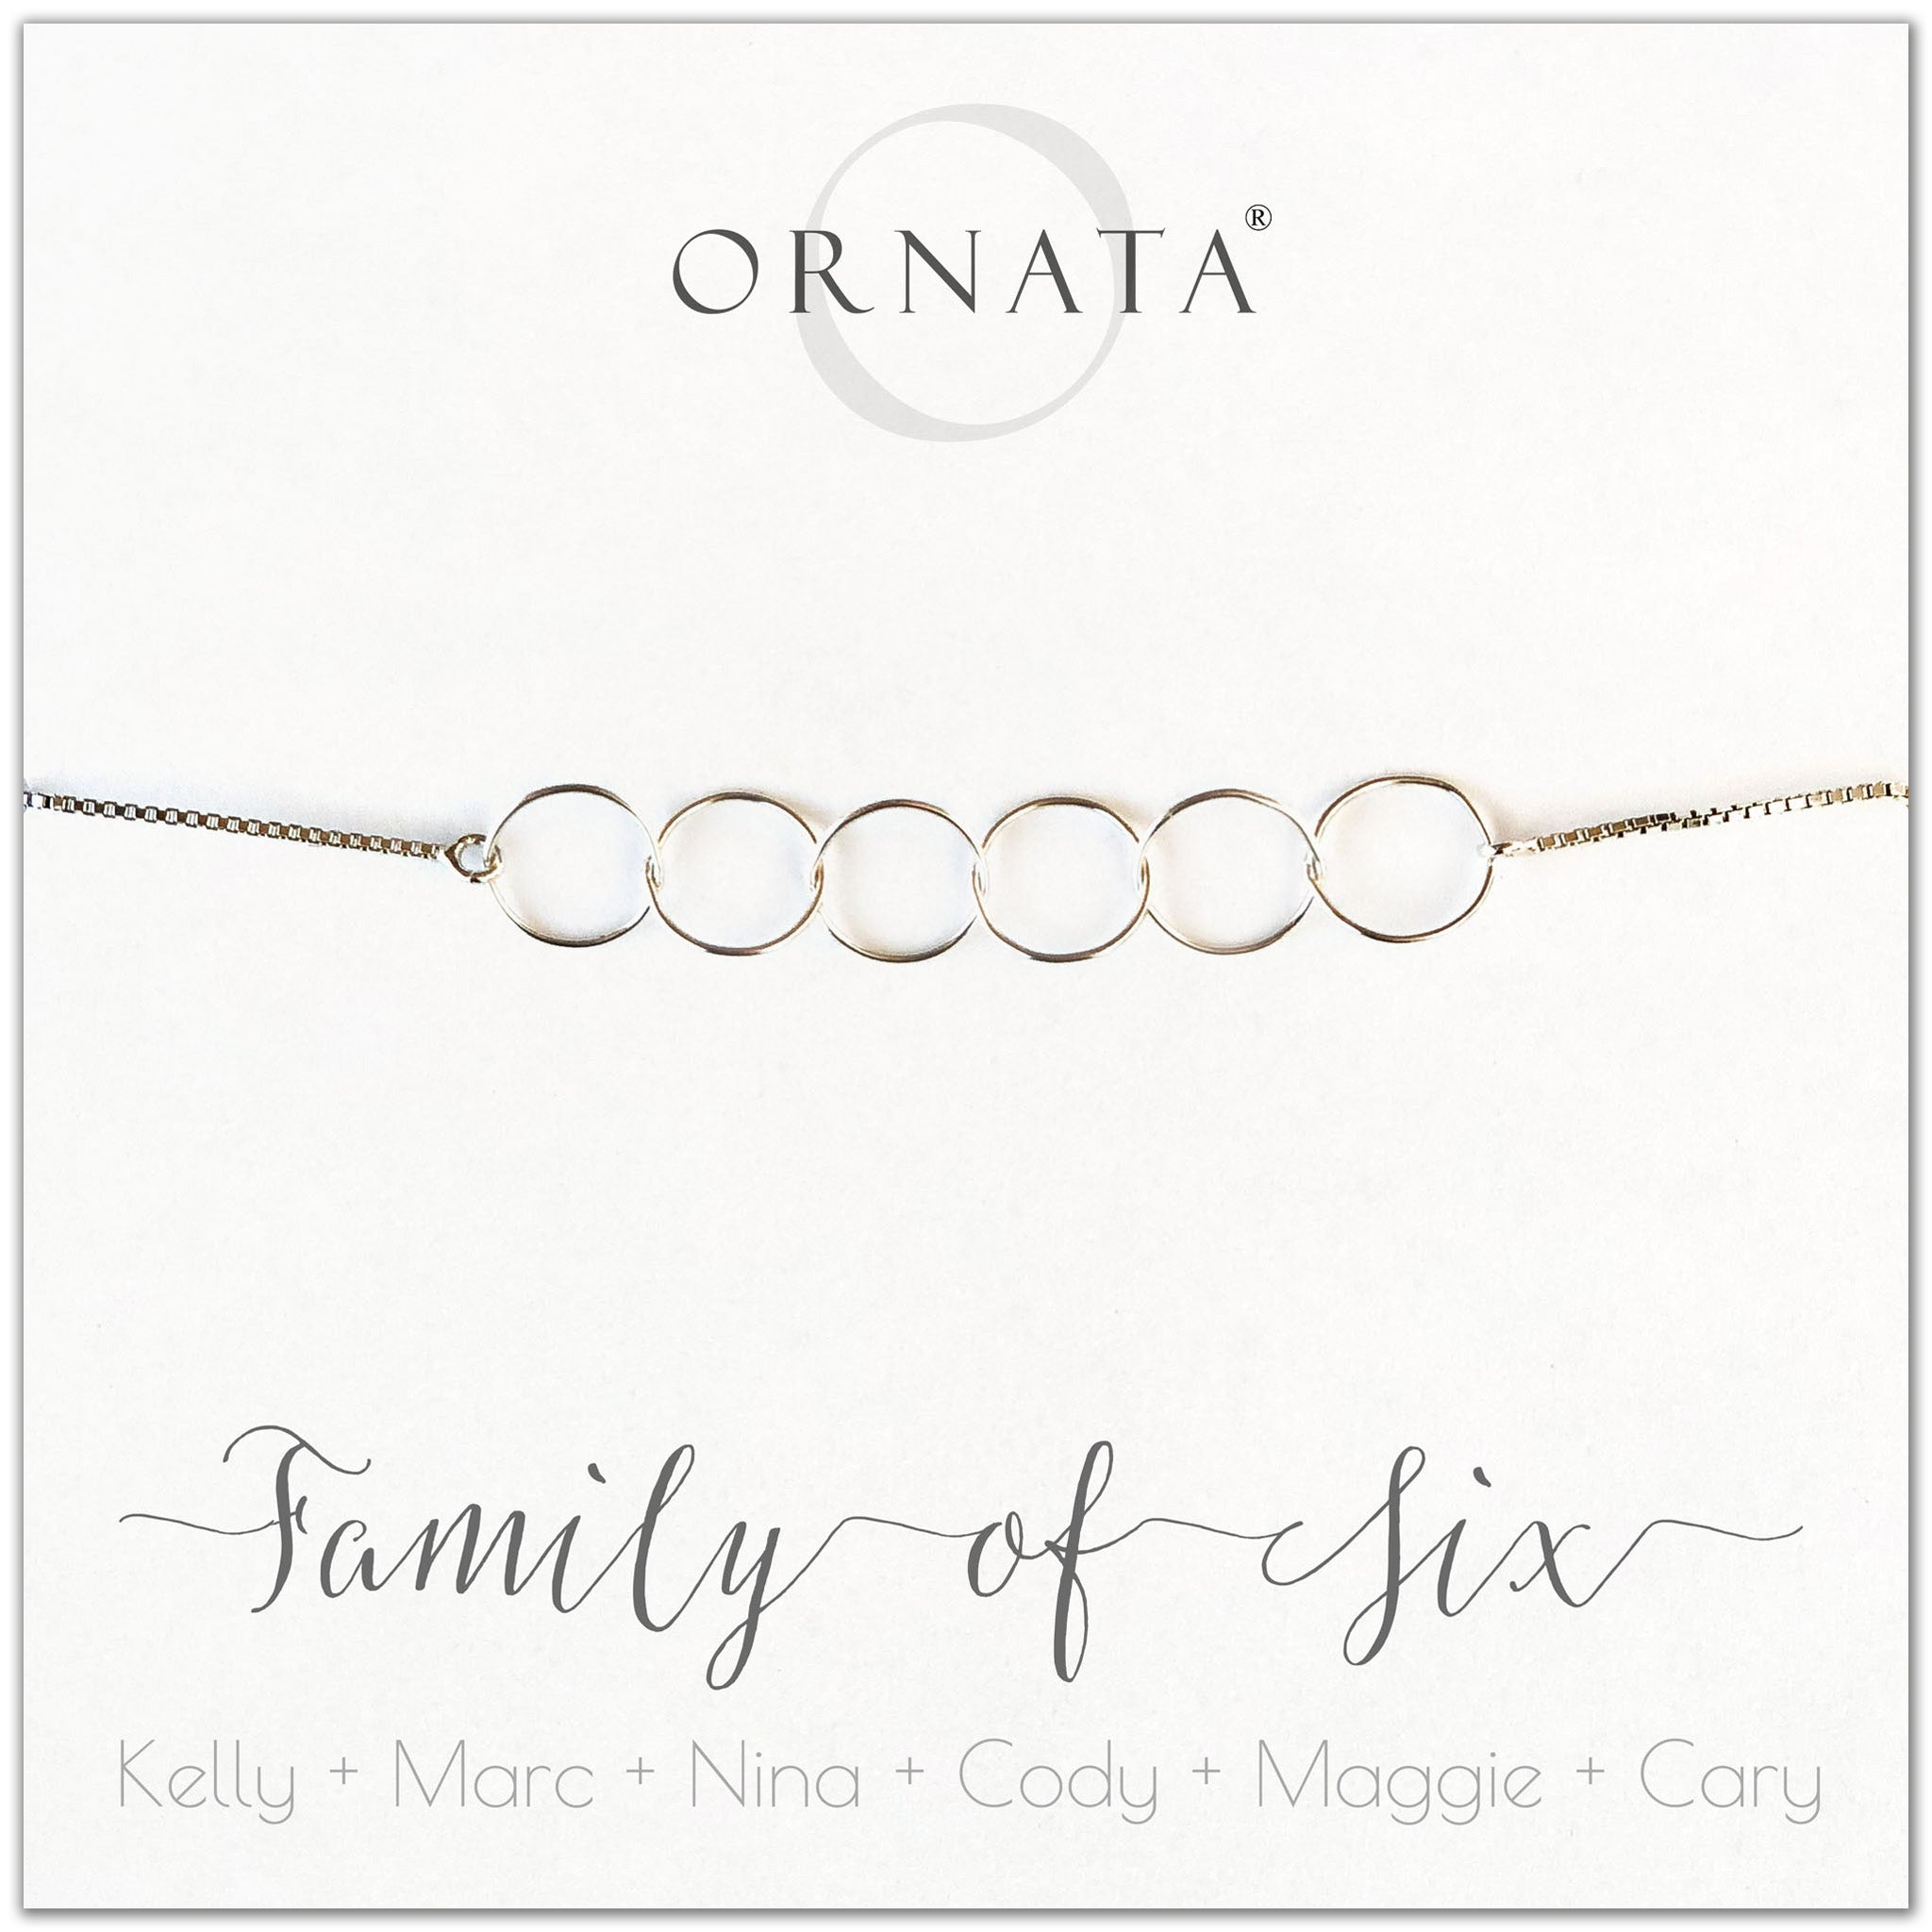 Family of six personalized sterling silver bolo bracelet. Our custom bracelets make good gifts for new families, mothers, and newlyweds. Great bridal shower gift, wedding gift, or baby shower gift. Also good mother's day gift.